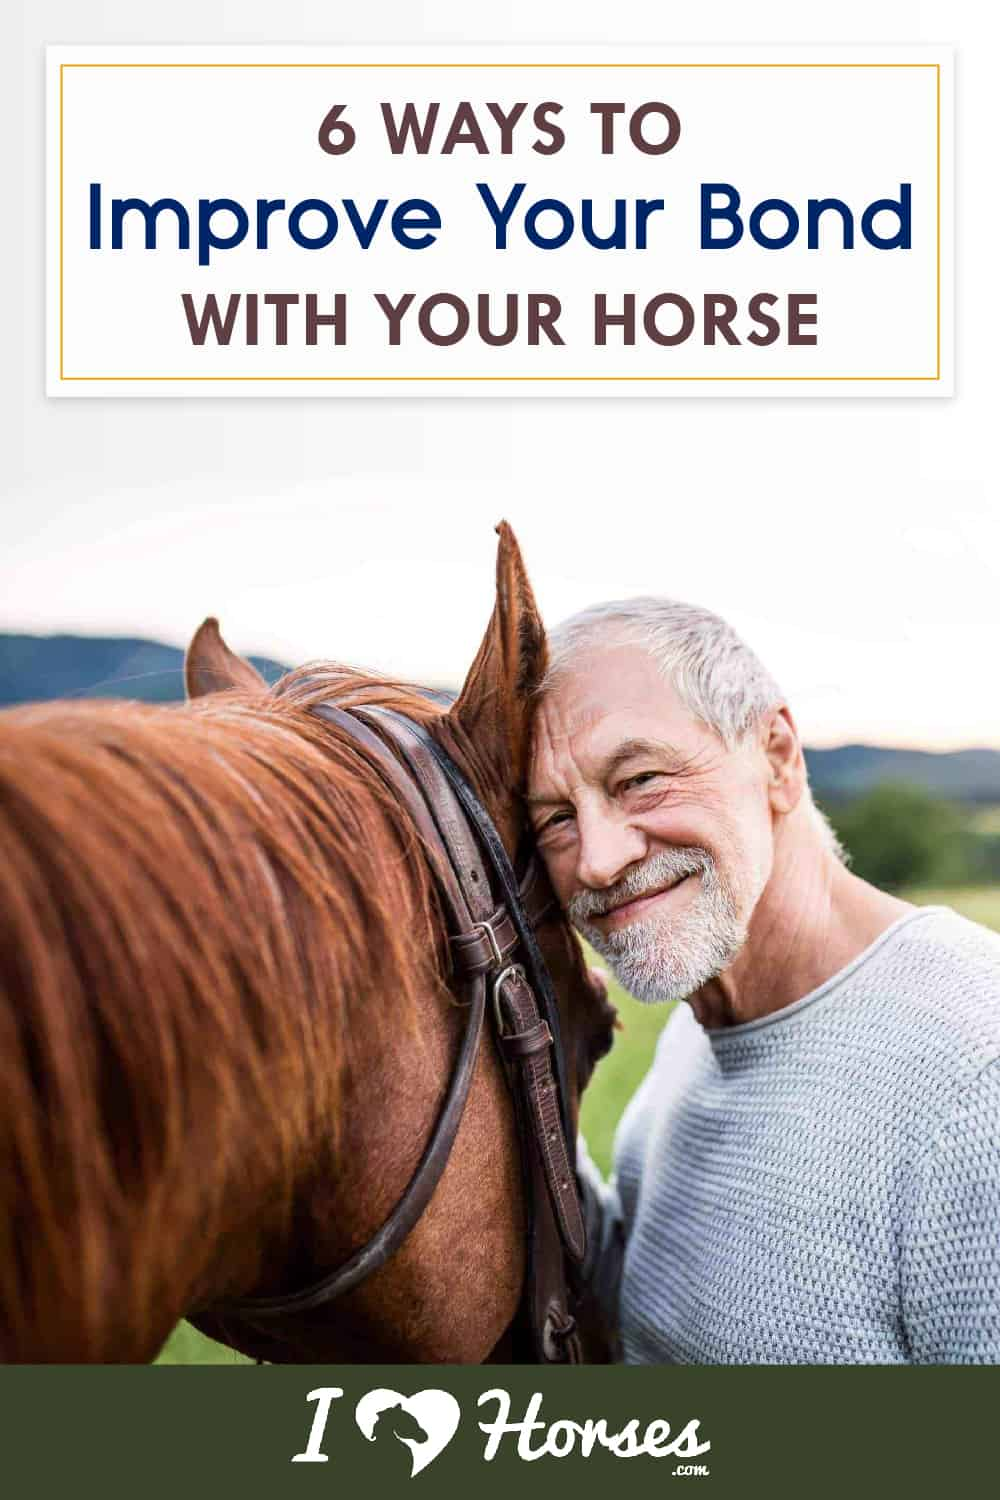 6 Ways To Improve Your Bond With Your Horse-02-01